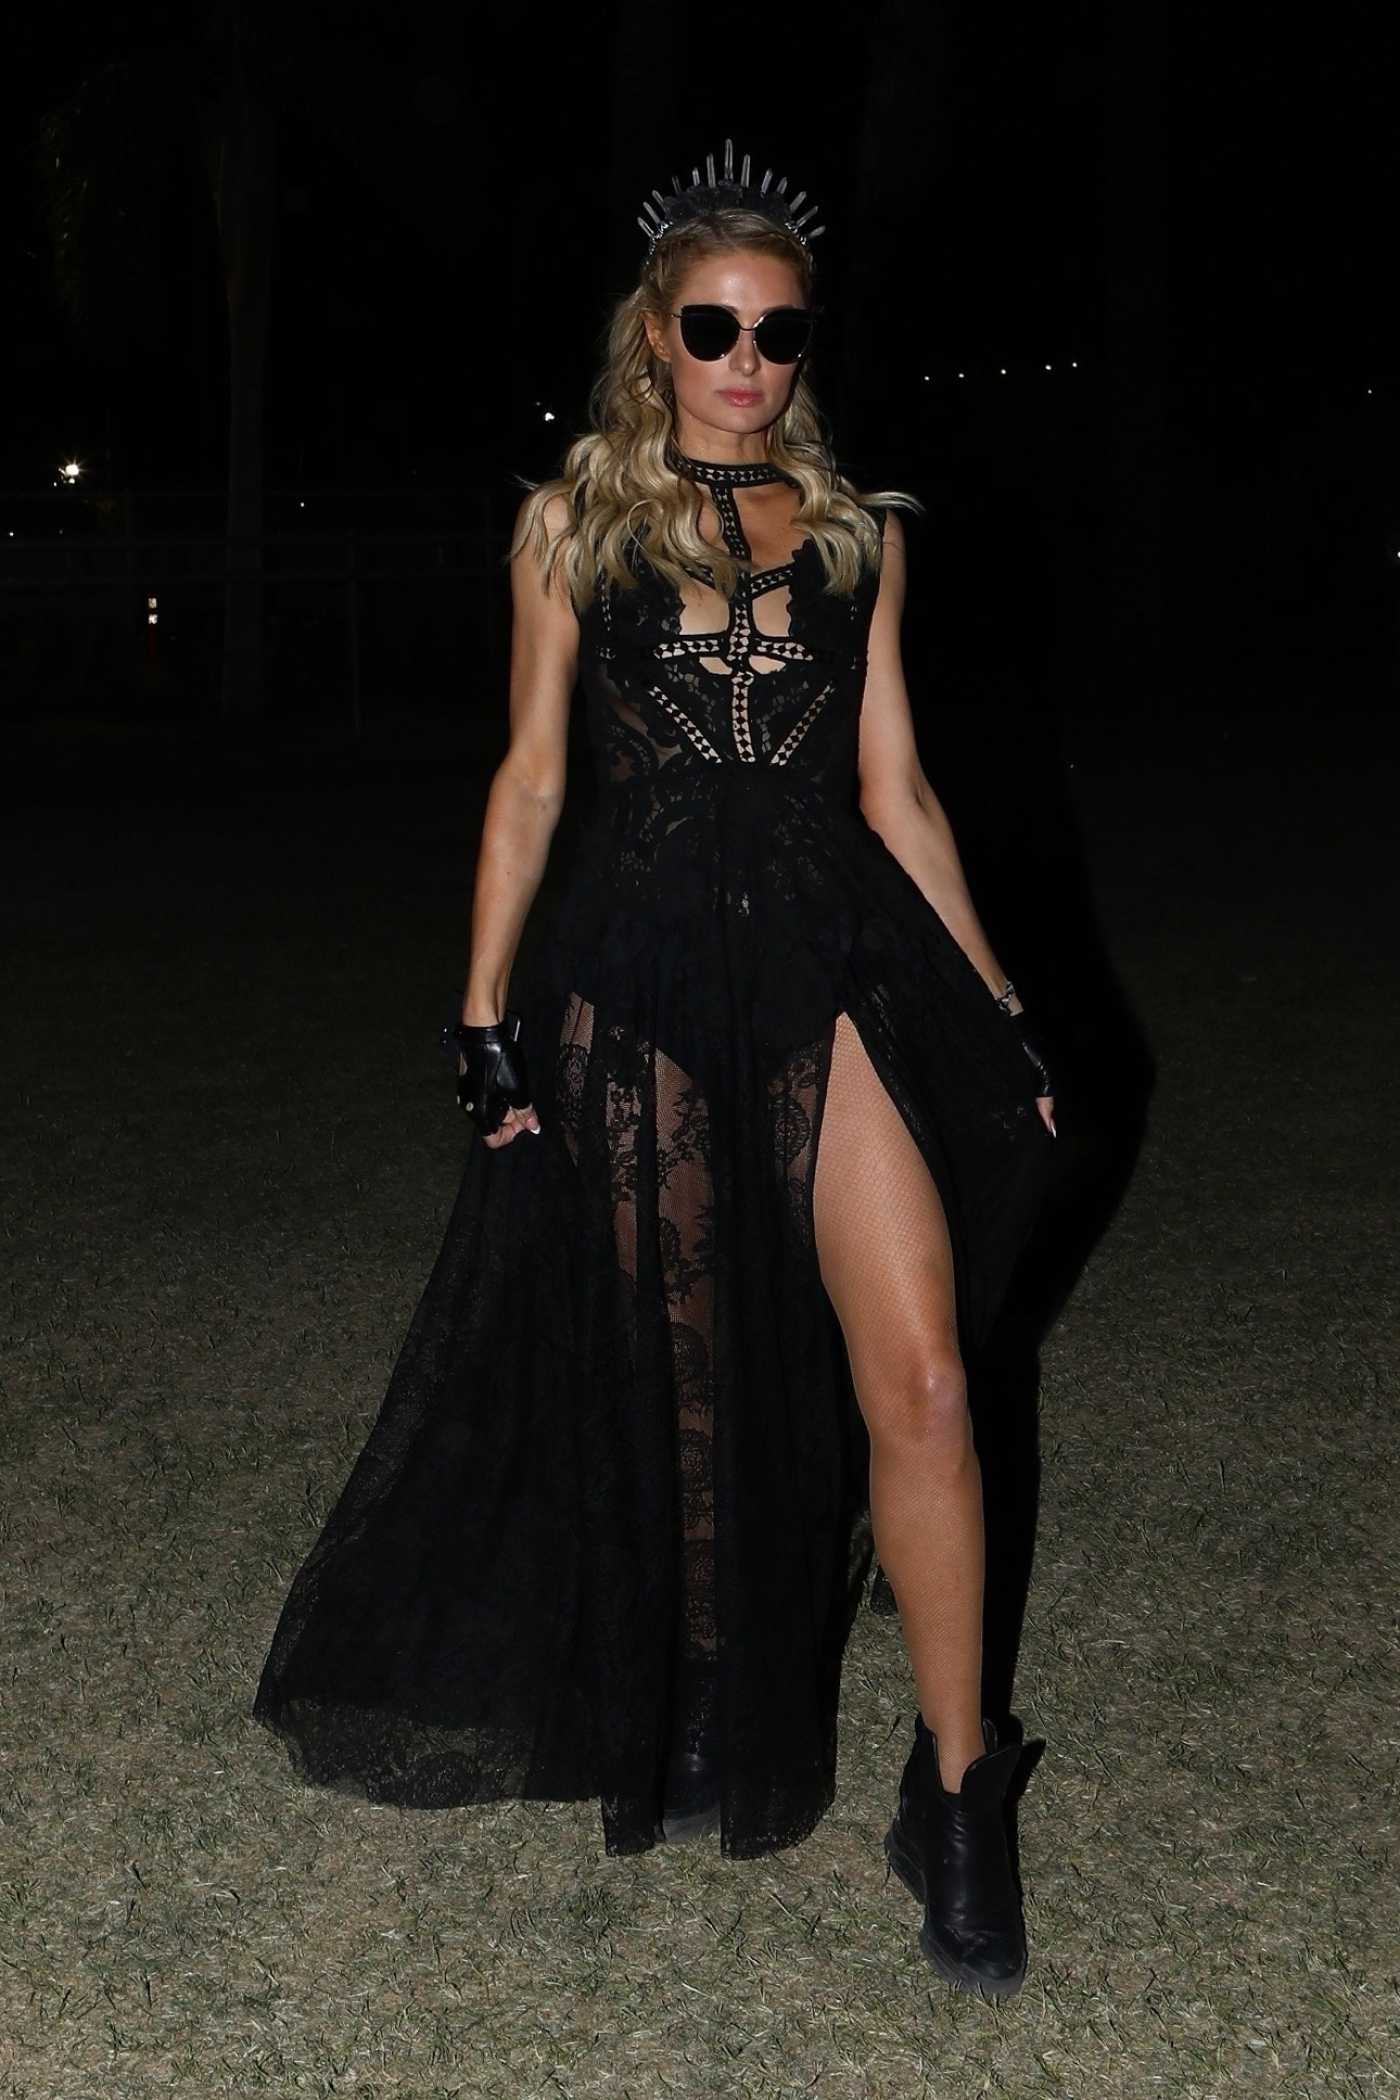 Paris Hilton in a Black Dress Night Out at the Coachella Valley Music and Arts Festival in Indio 04/14/2019